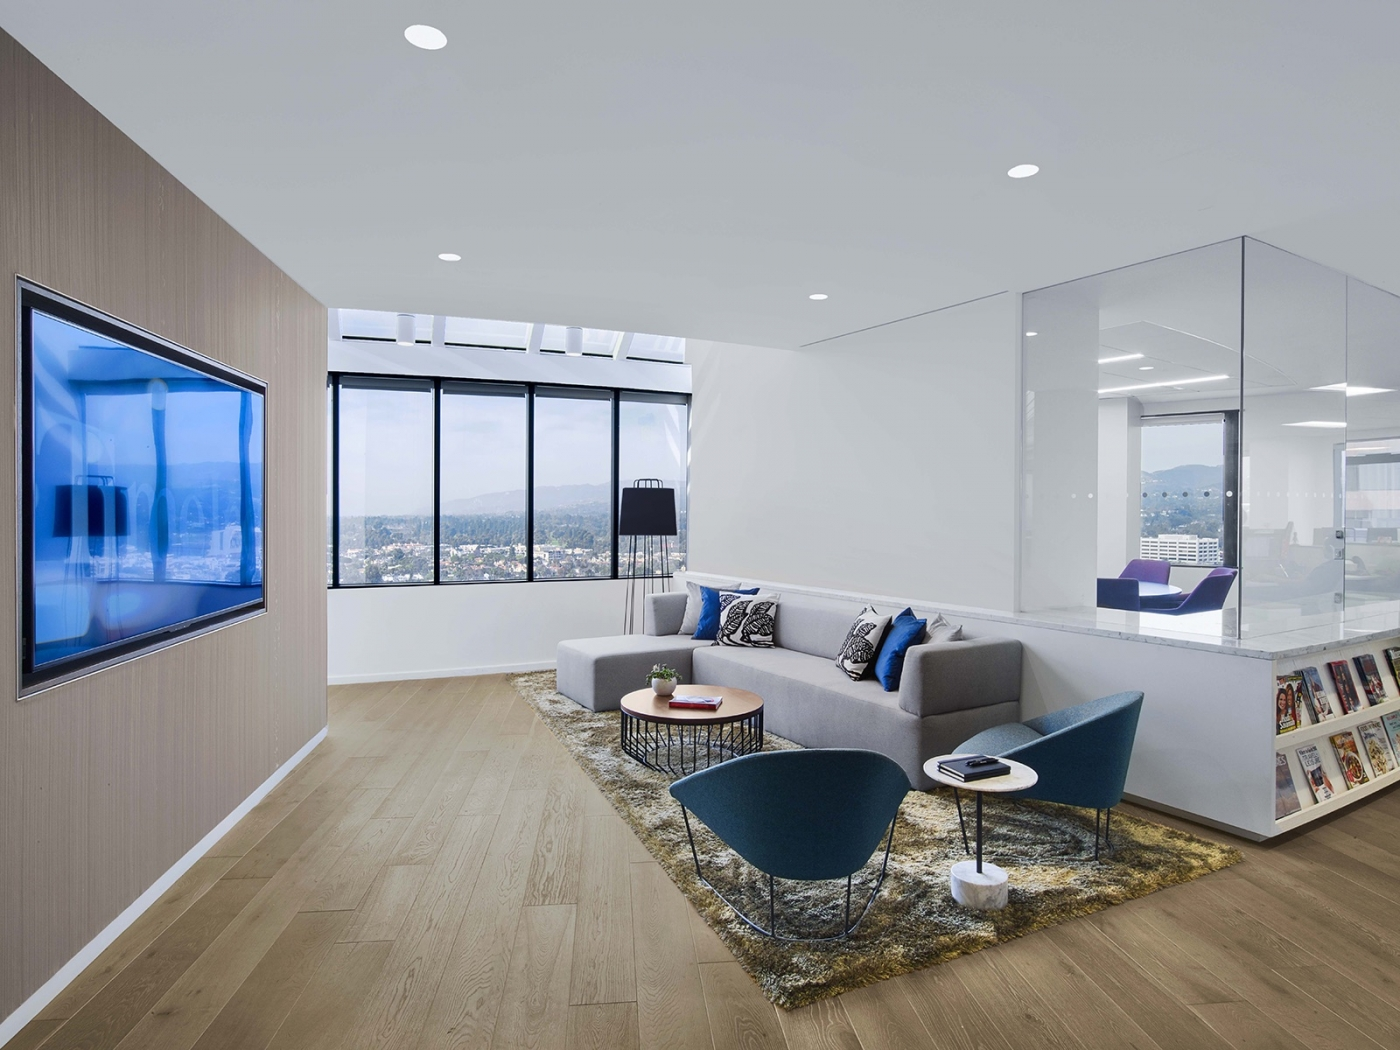 innovative design HLW – The Masters of Innovative Design meredit los angeles office 6 1 1400x1050